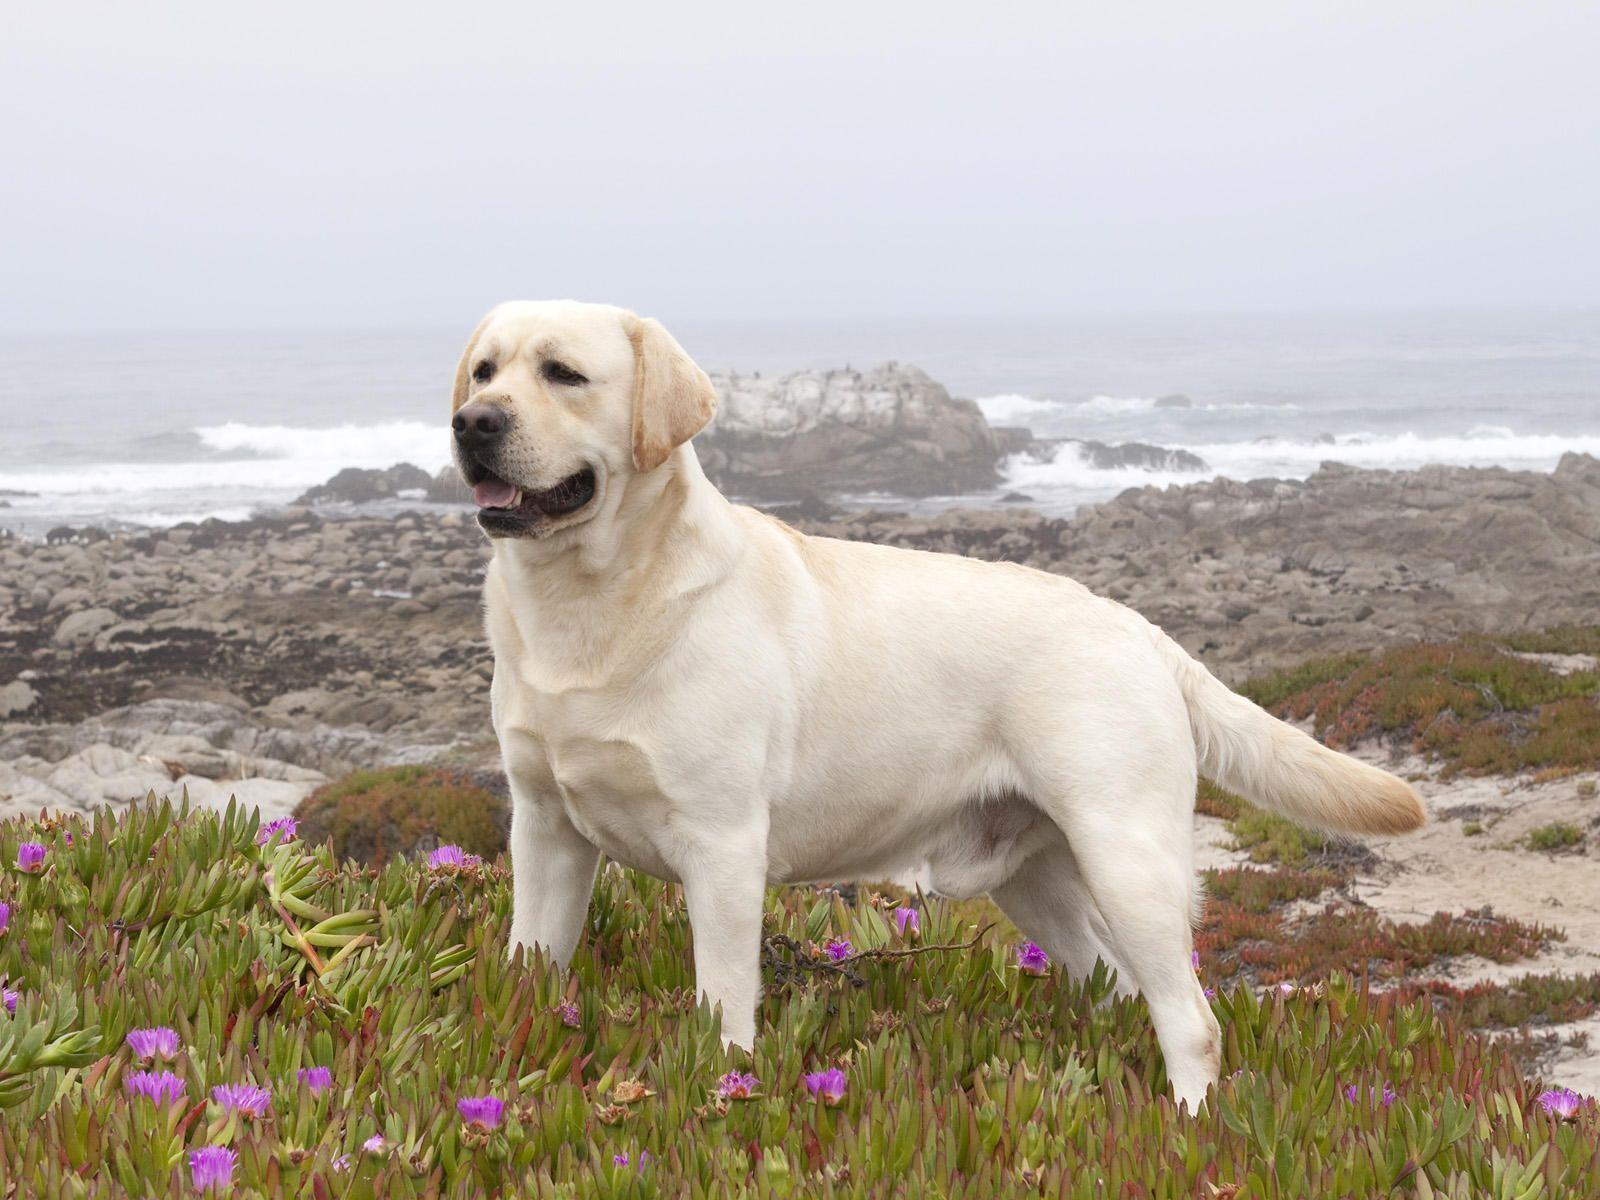 Yellow Labrador Retriever Wallpaper Images & Pictures - Becuo